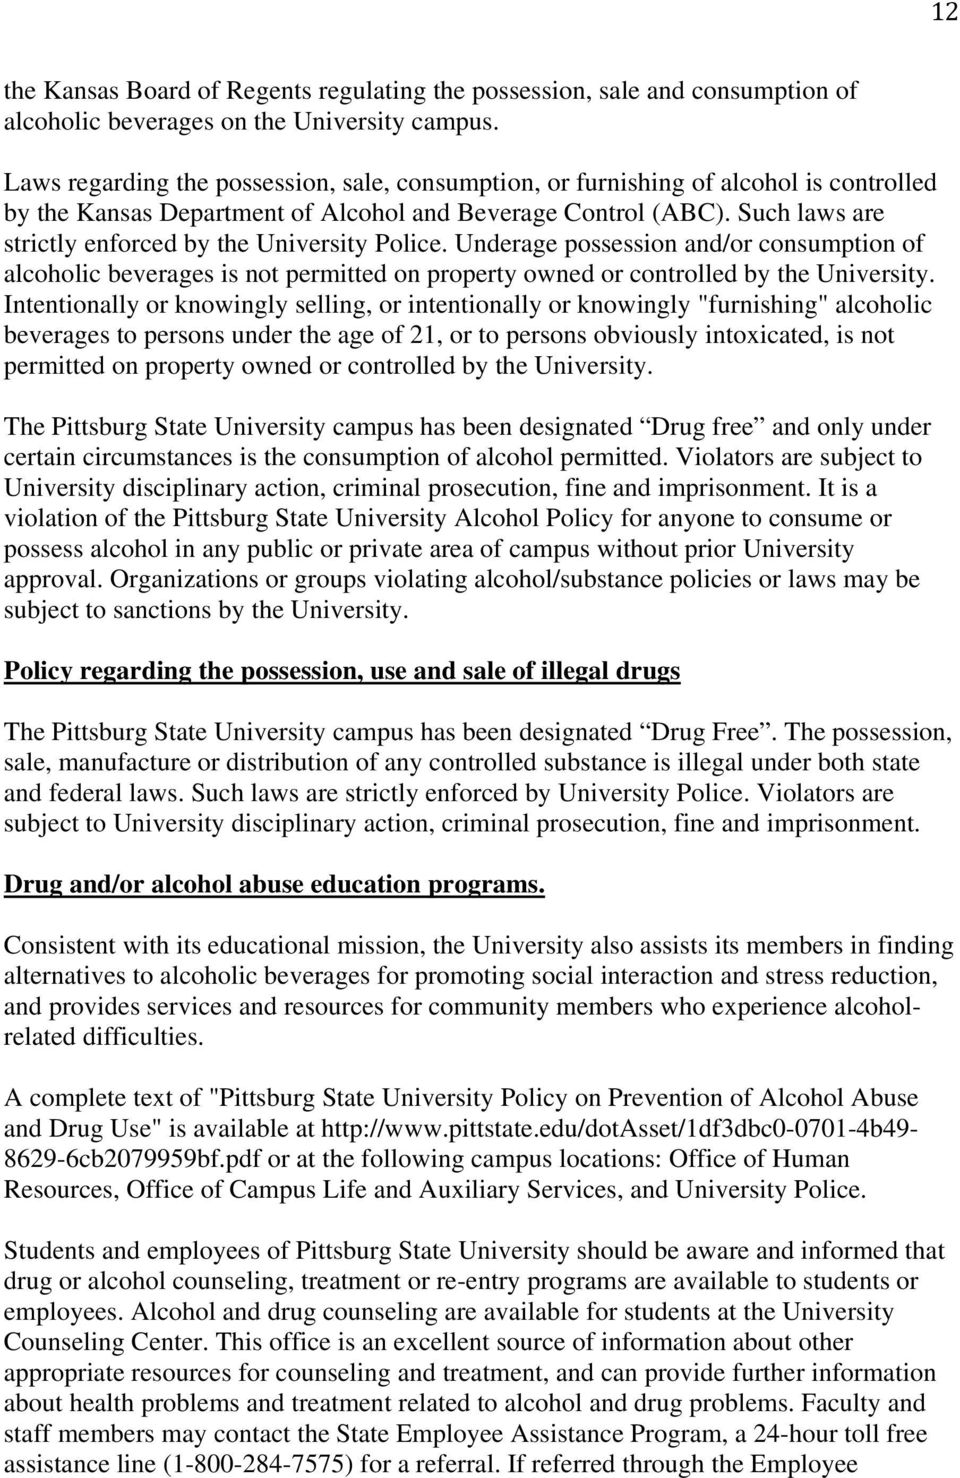 Such laws are strictly enforced by the University Police. Underage possession and/or consumption of alcoholic beverages is not permitted on property owned or controlled by the University.